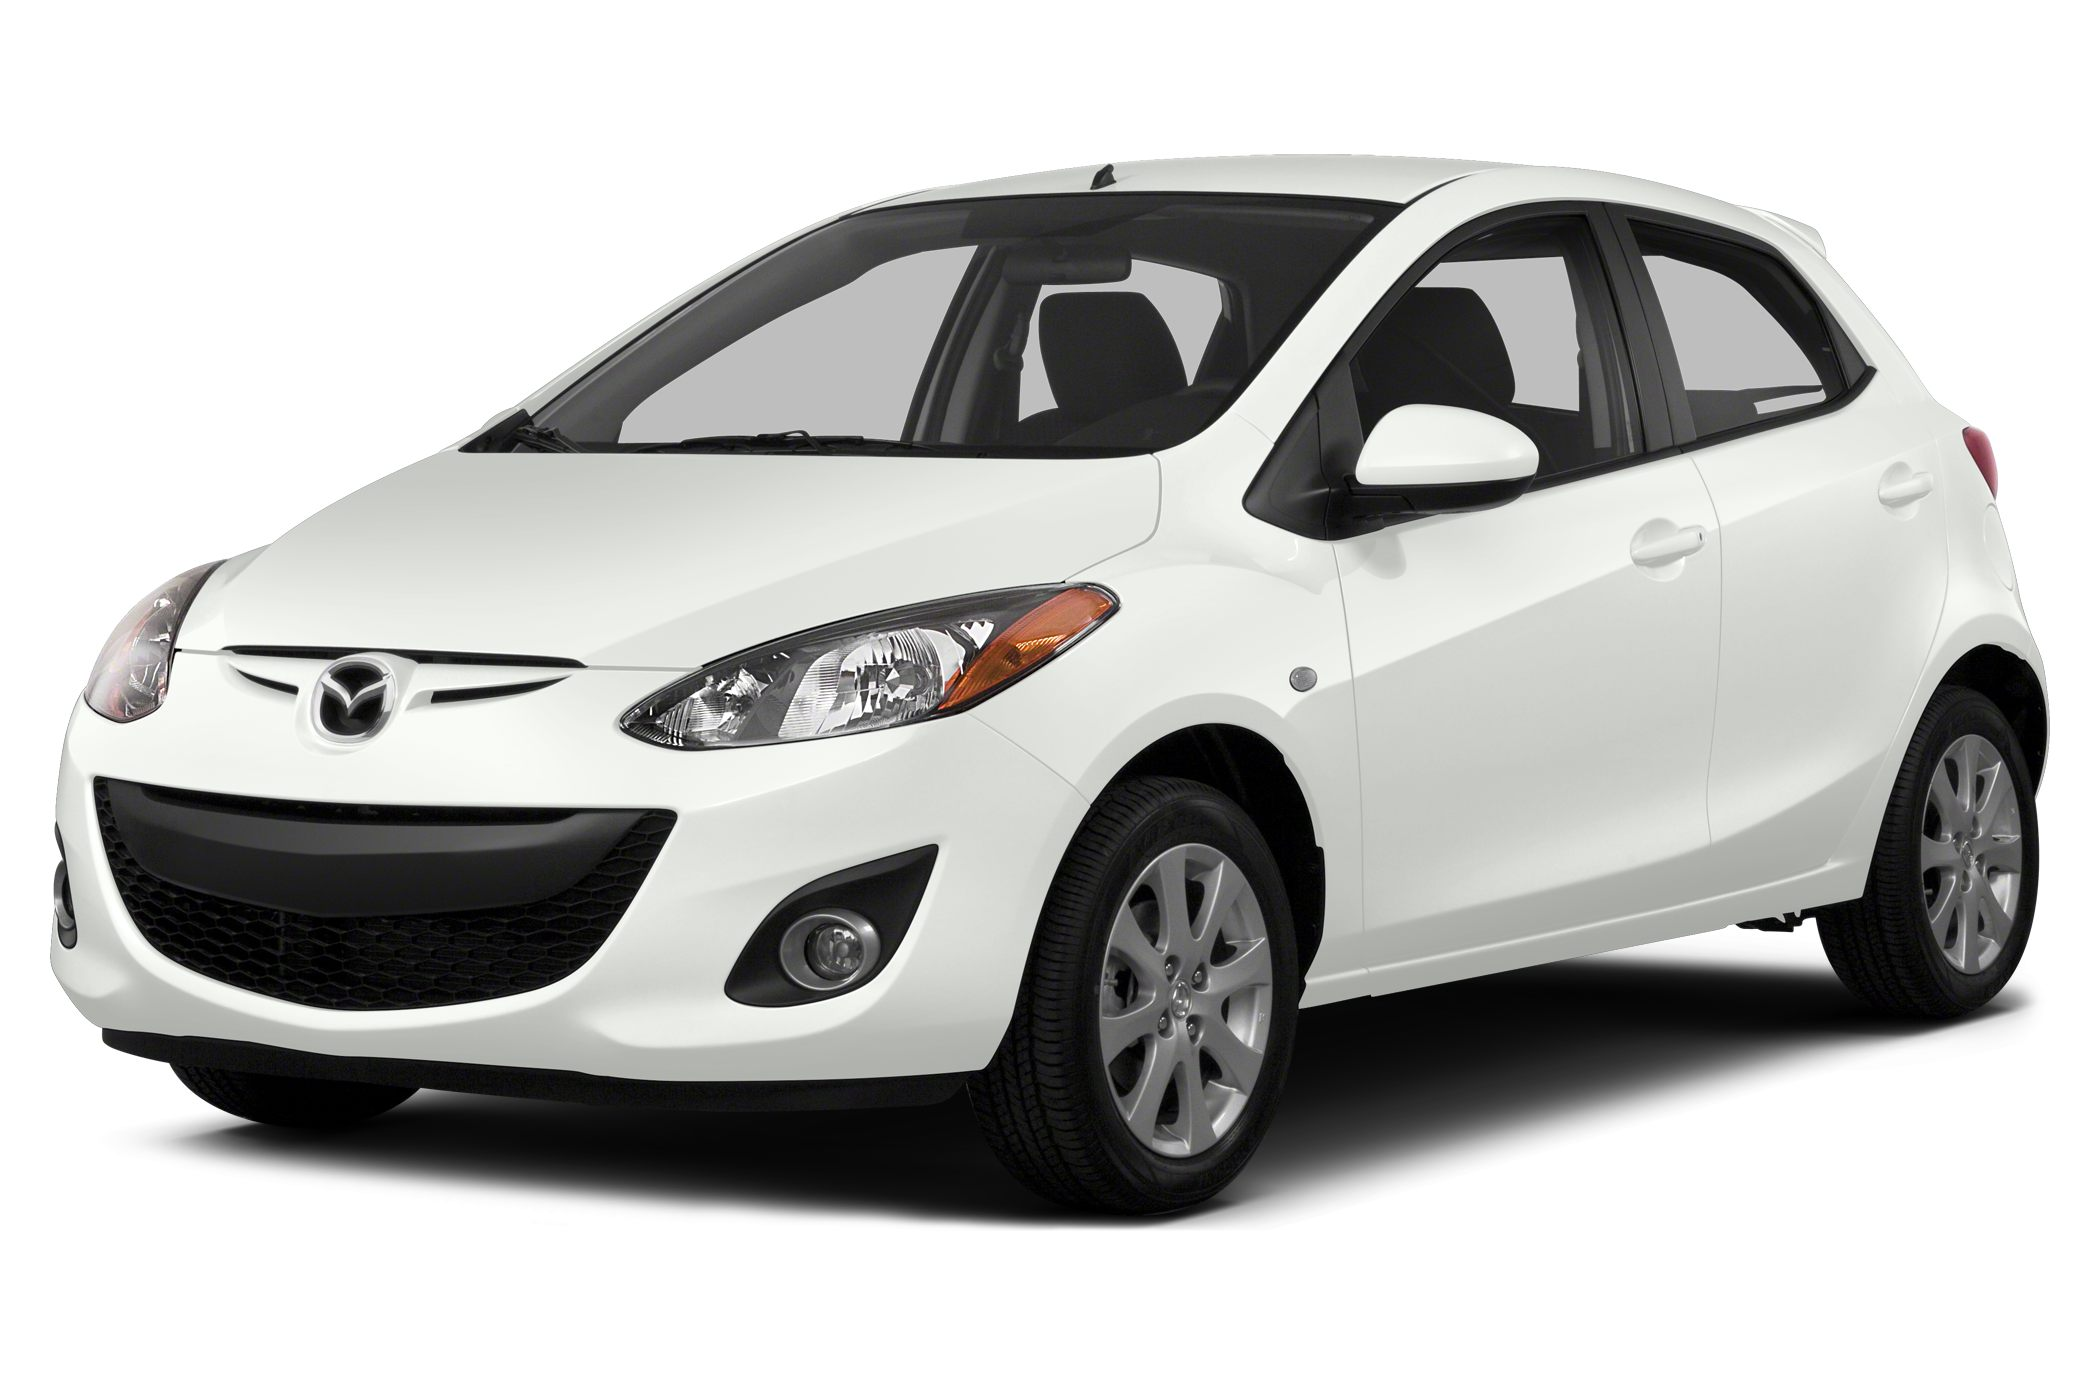 Mazda Mazda2 News, Photos and Buying Information